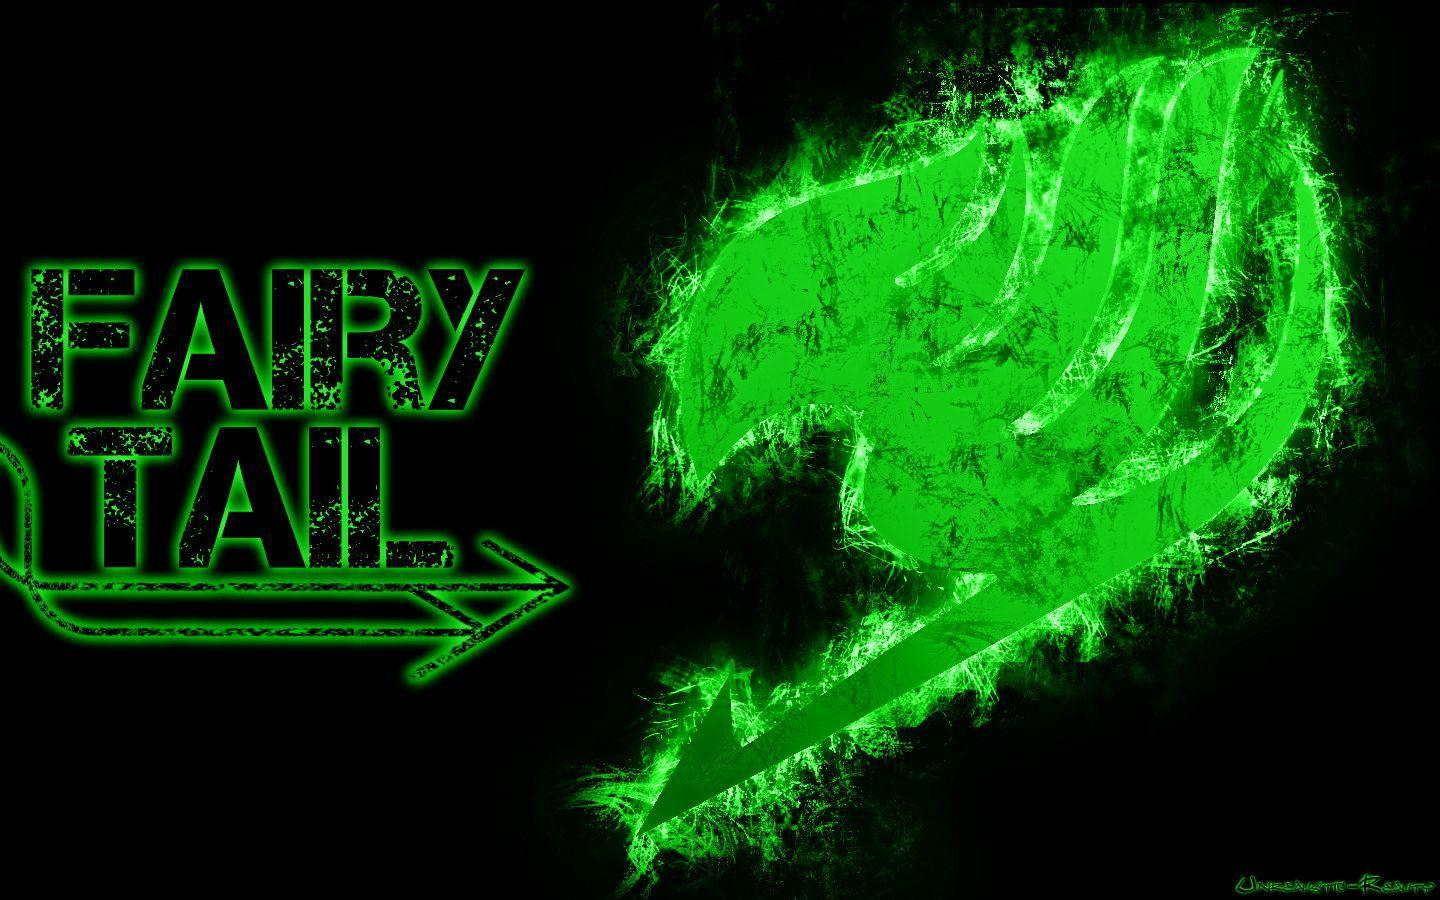 Fairy Tail green logo